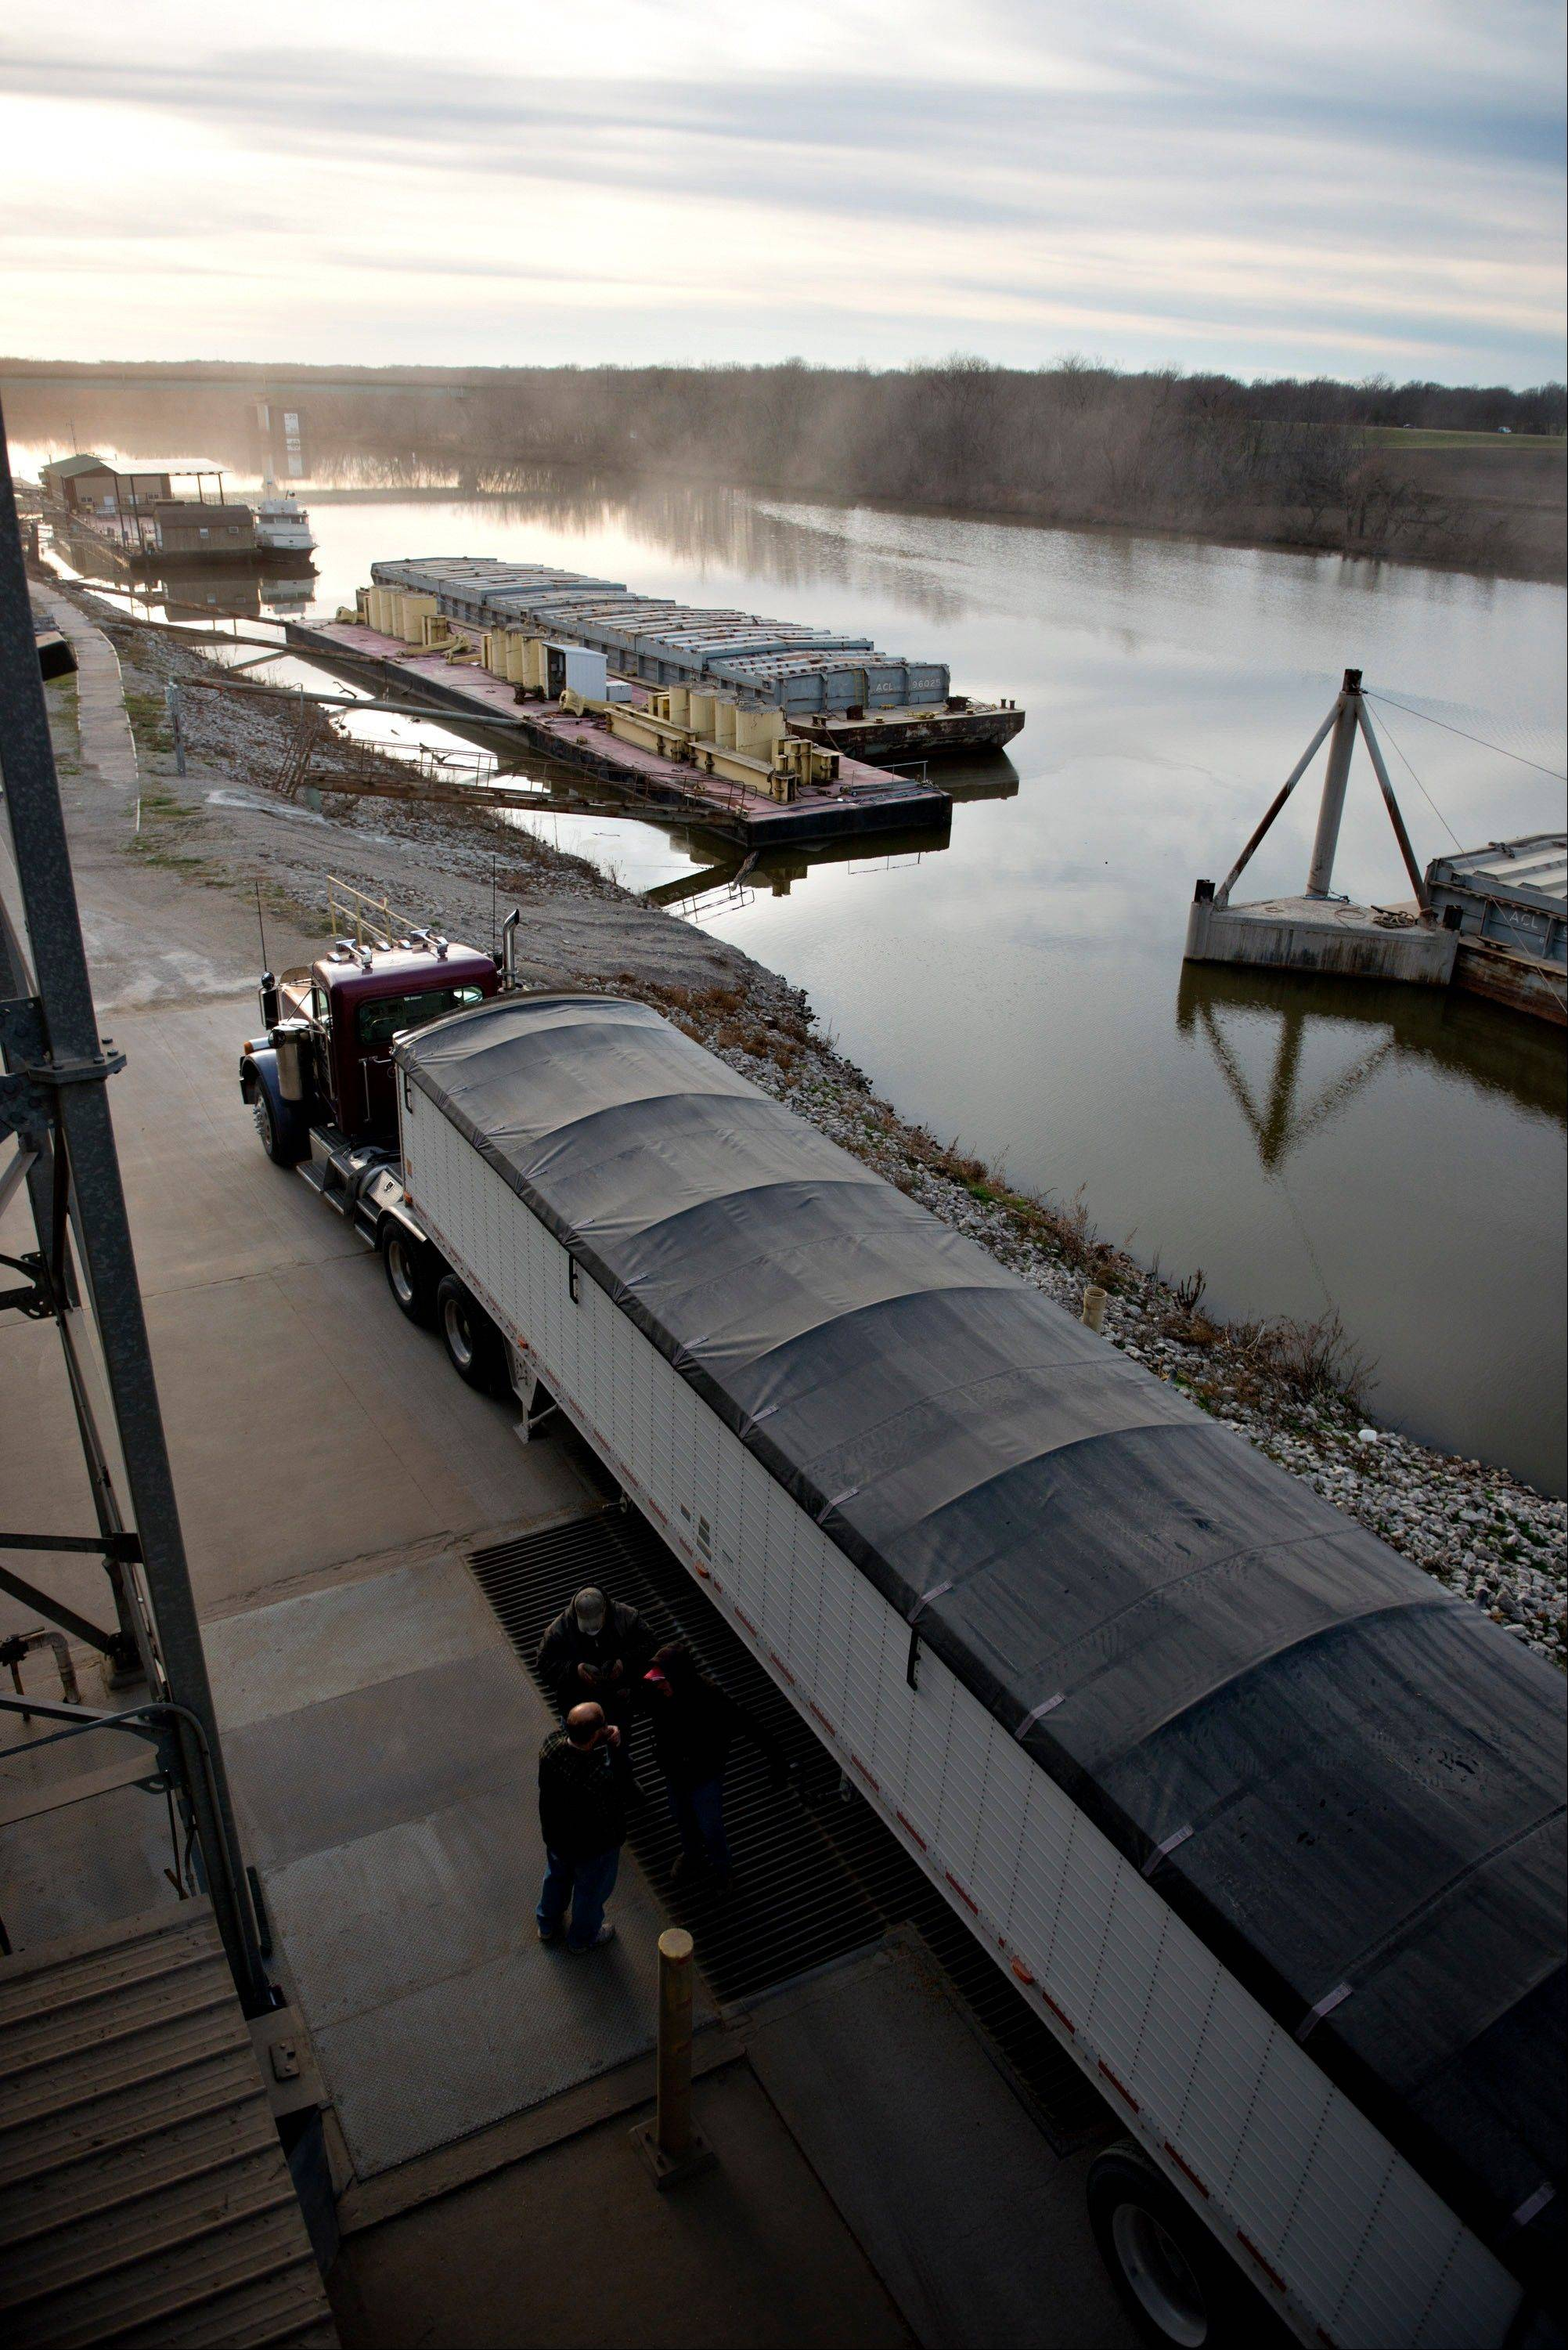 A truck drops off a load of soybeans Wednesday at the Gateway FS elevator on the Kaskaskia River, a tributary of the Mississippi River, in Evansville, Ill.